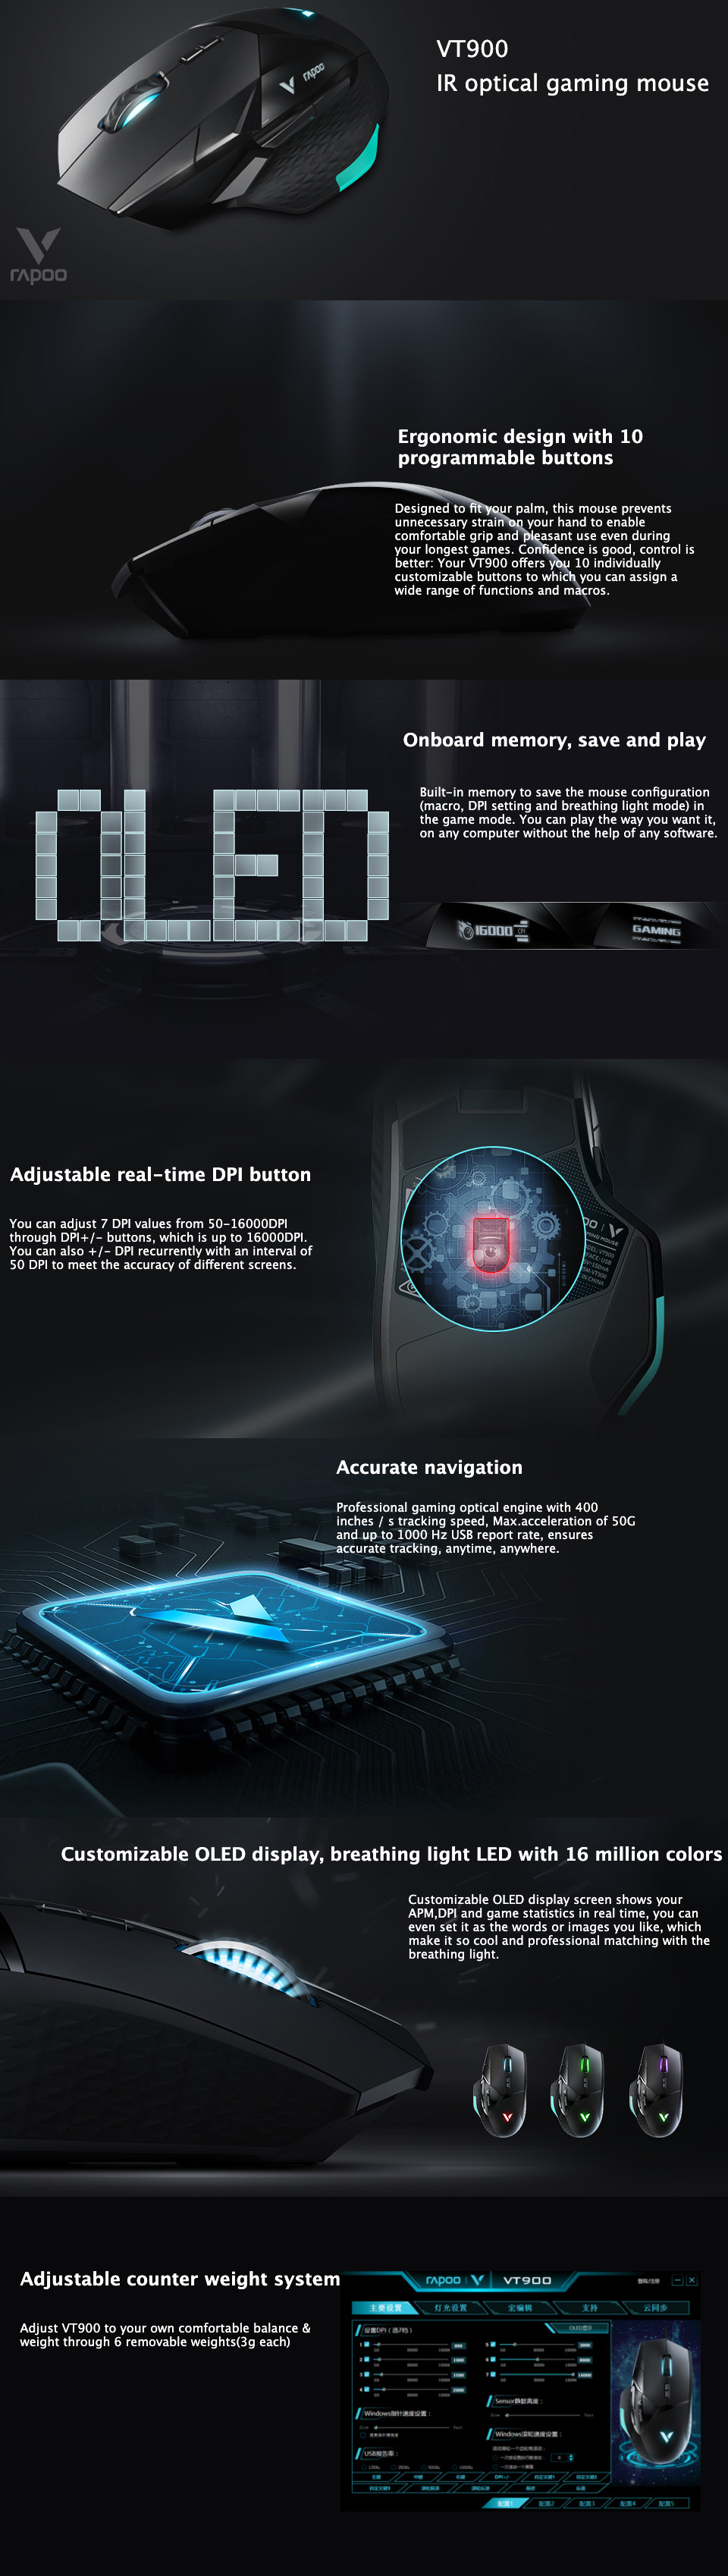 Rapoo VT900 IR Optical Gaming Mouse features/specifications